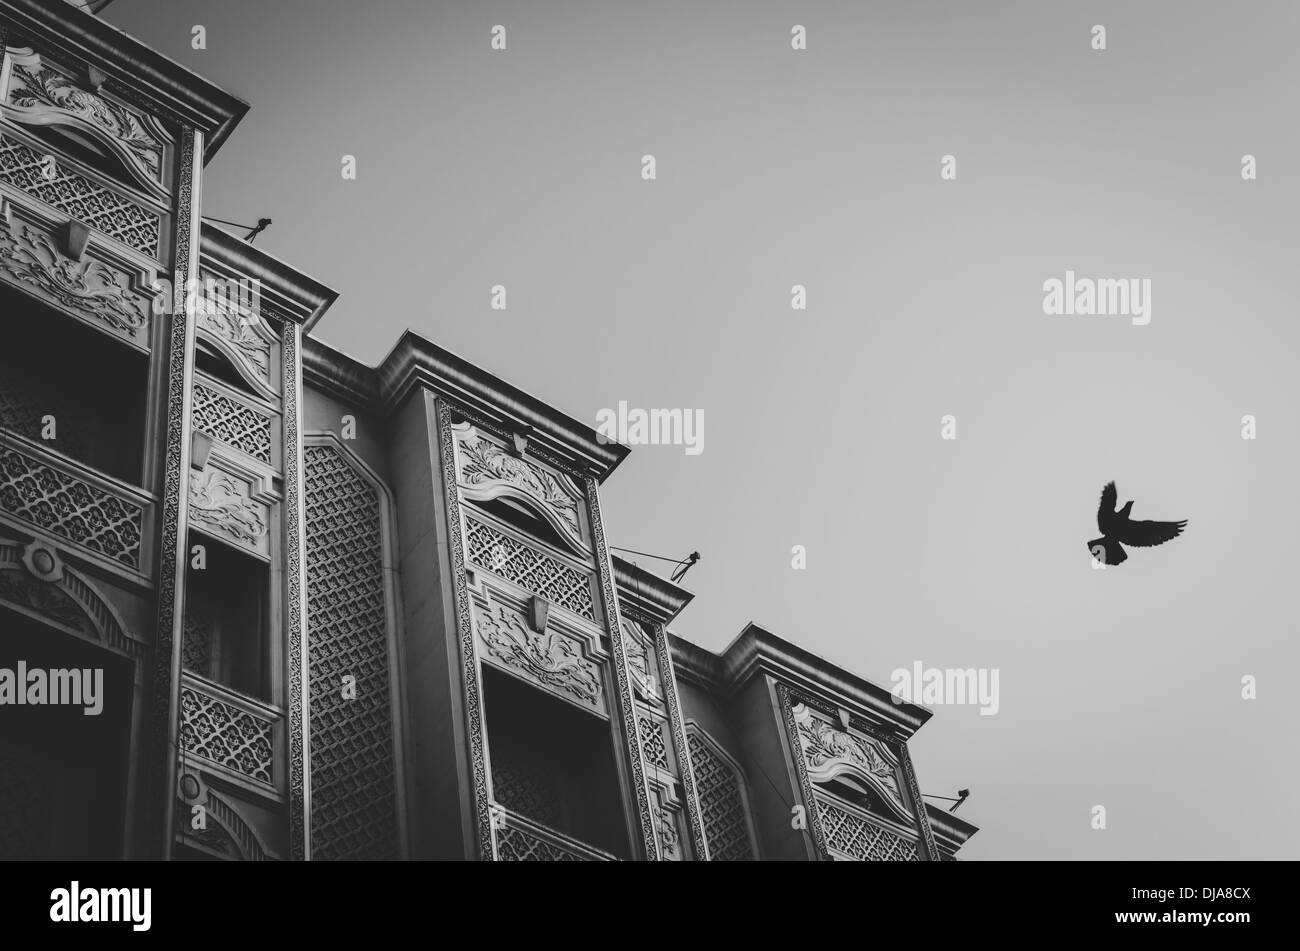 A pigeon flies in front of an apartment building with arabesque motifs in Deira. Dubai, United Arab Emirates. - Stock Image